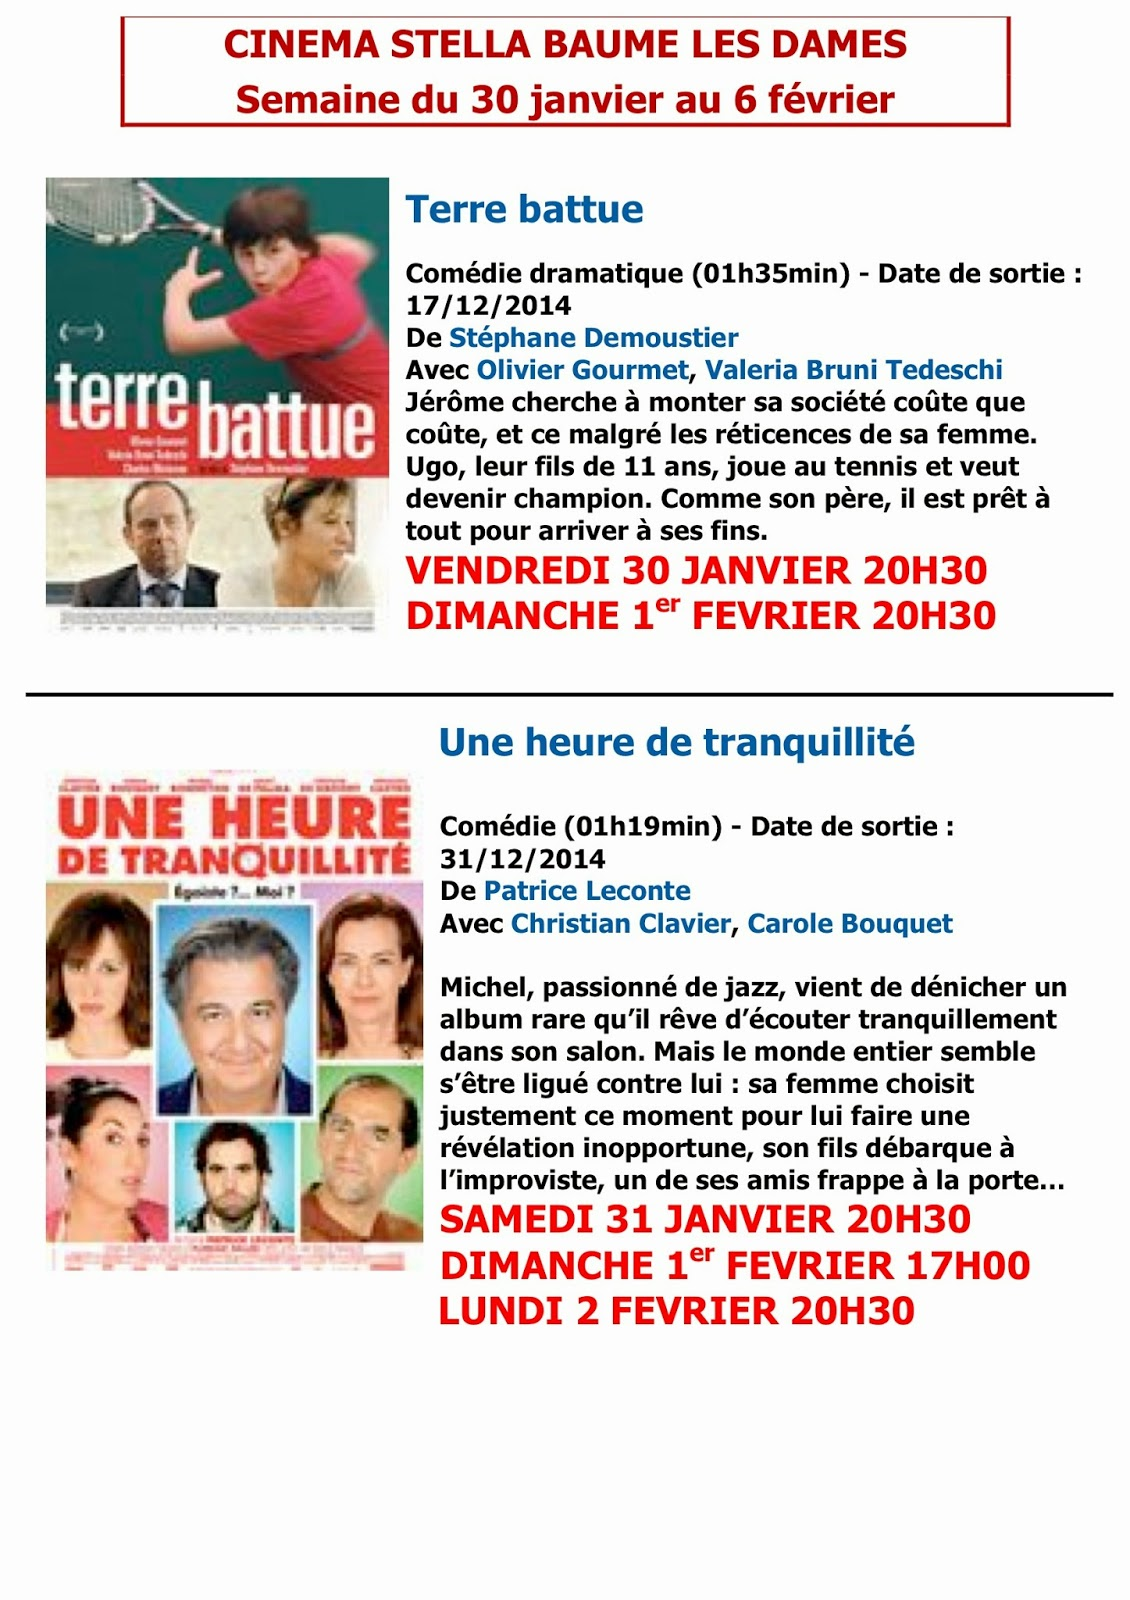 terre battue stephane demoustier